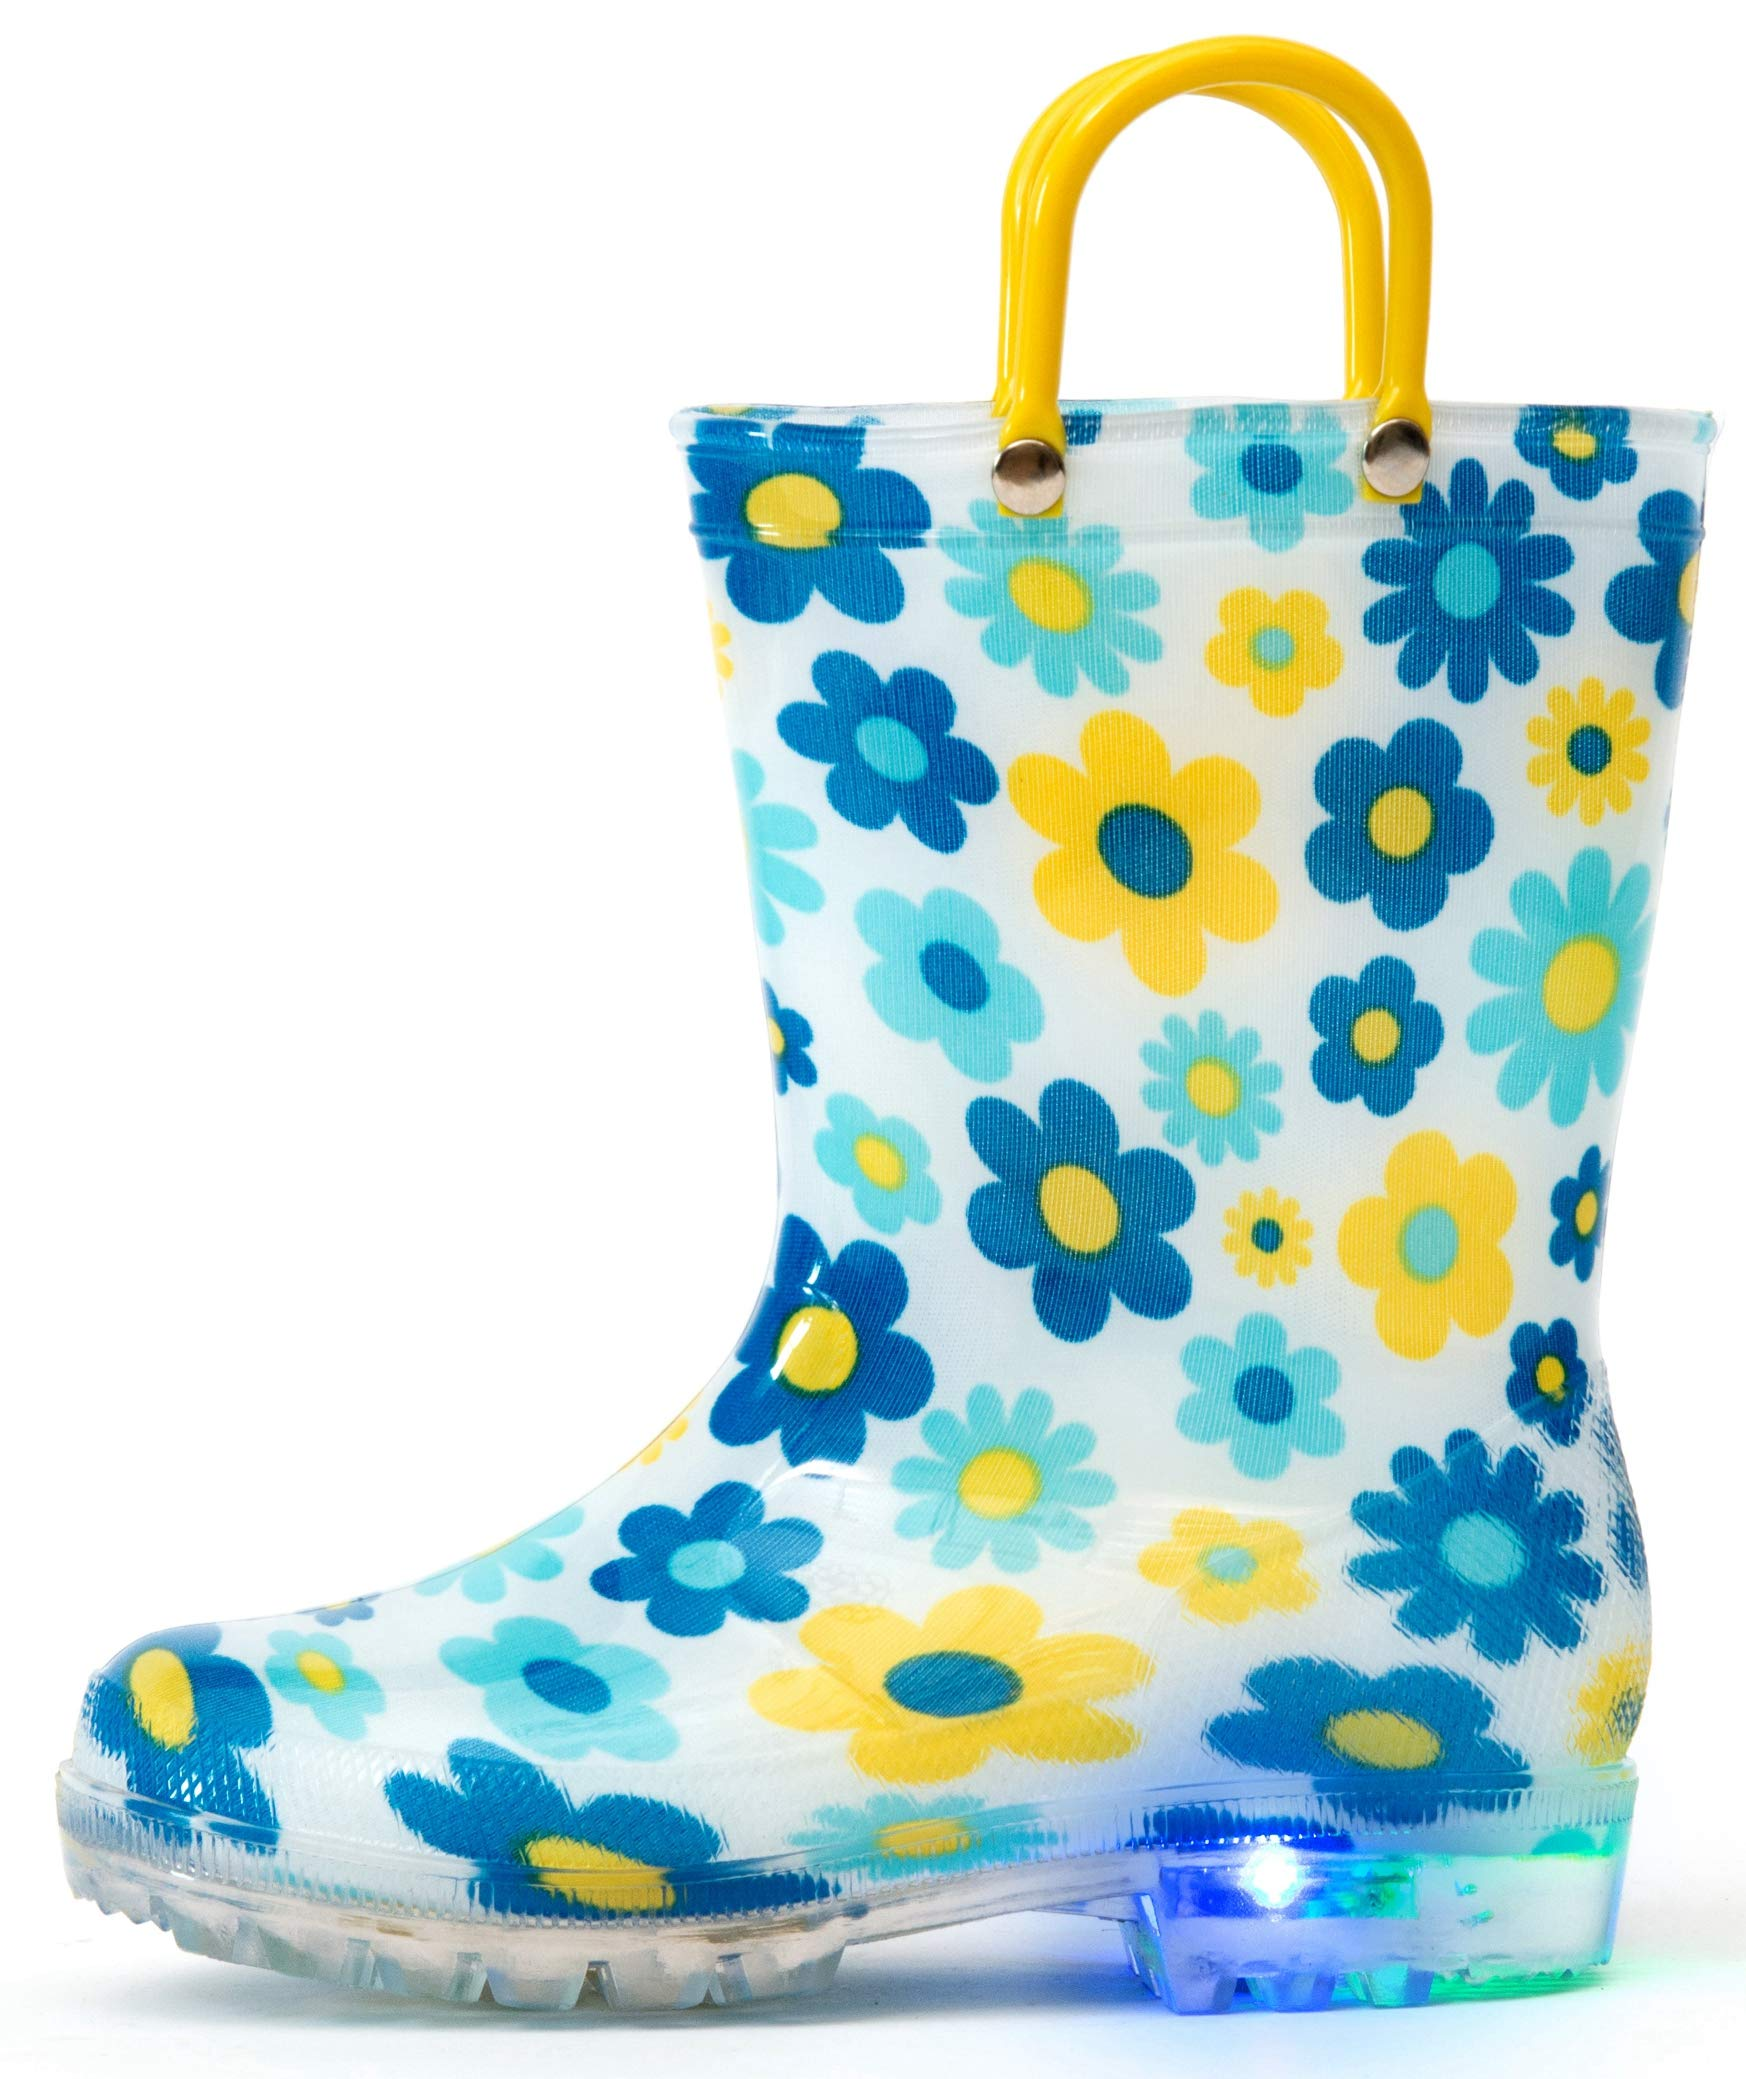 Outee Toddler Girls Kids Light Up Rain Boots Printed Waterproof Shoes Lightweight Cute Blue Flower with Easy-On Handles and Insole (Size 6,Blue)